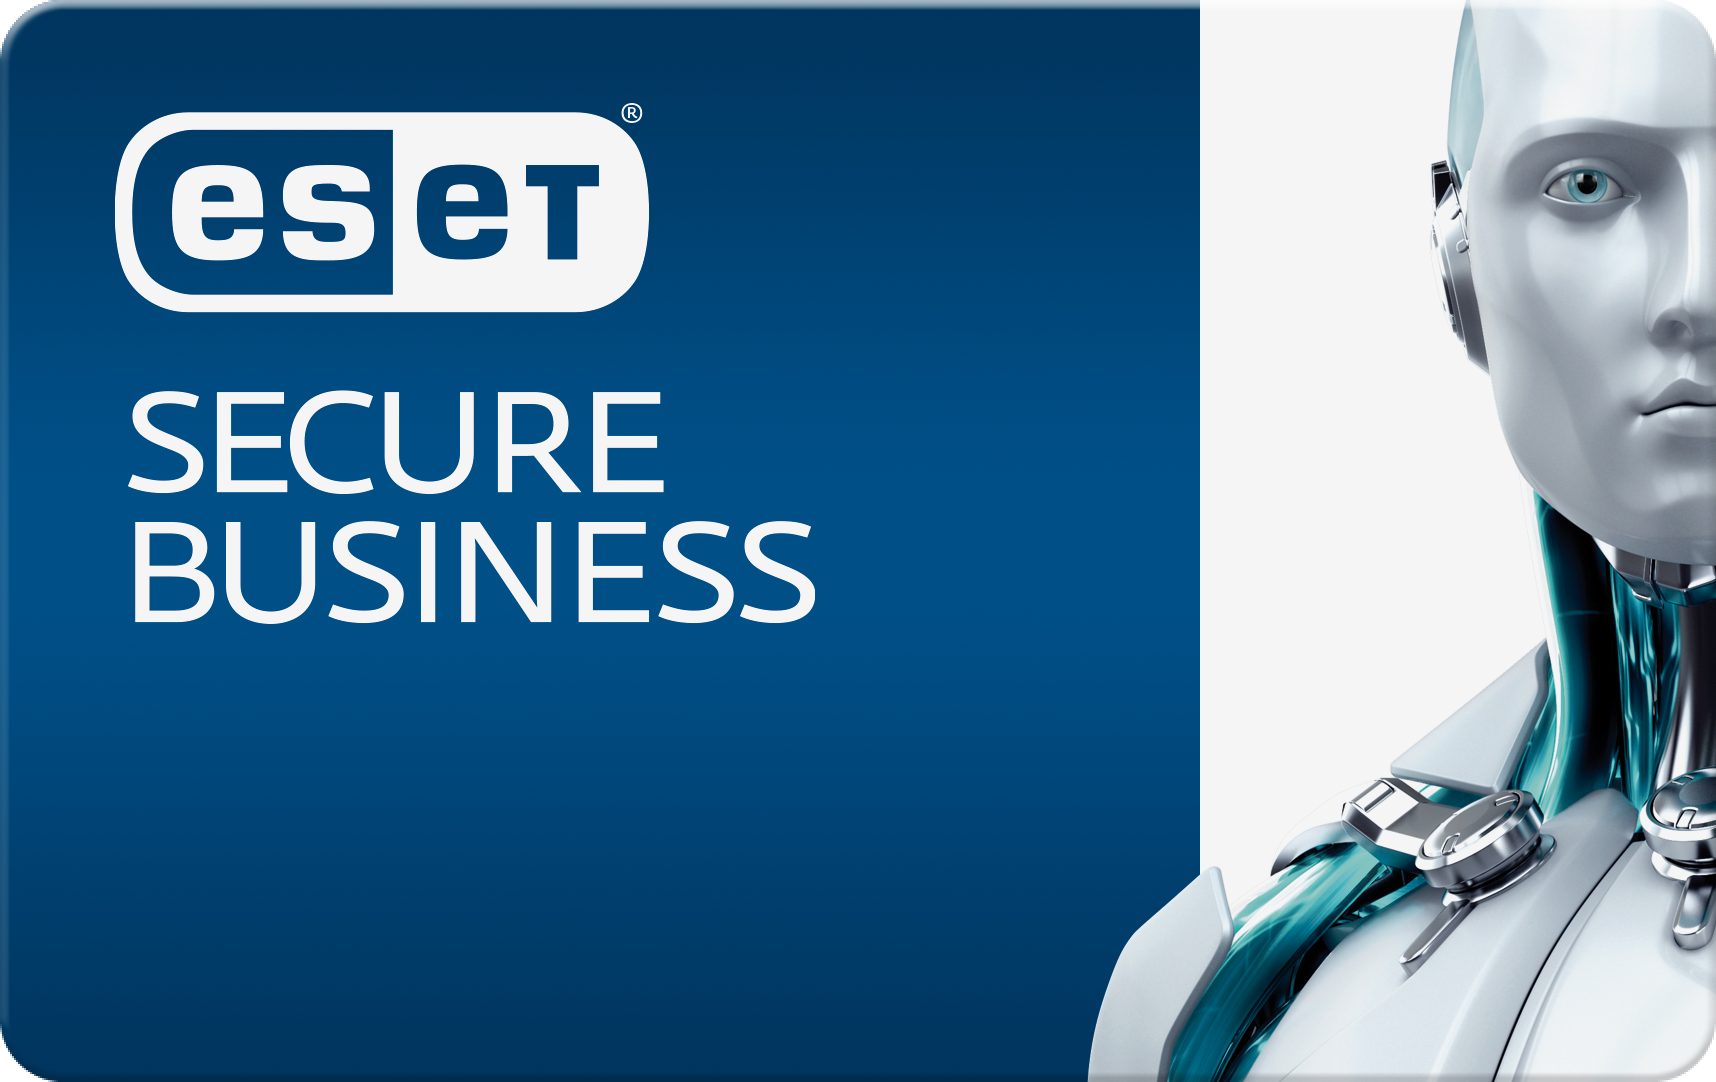 card---eset-secure-business.png